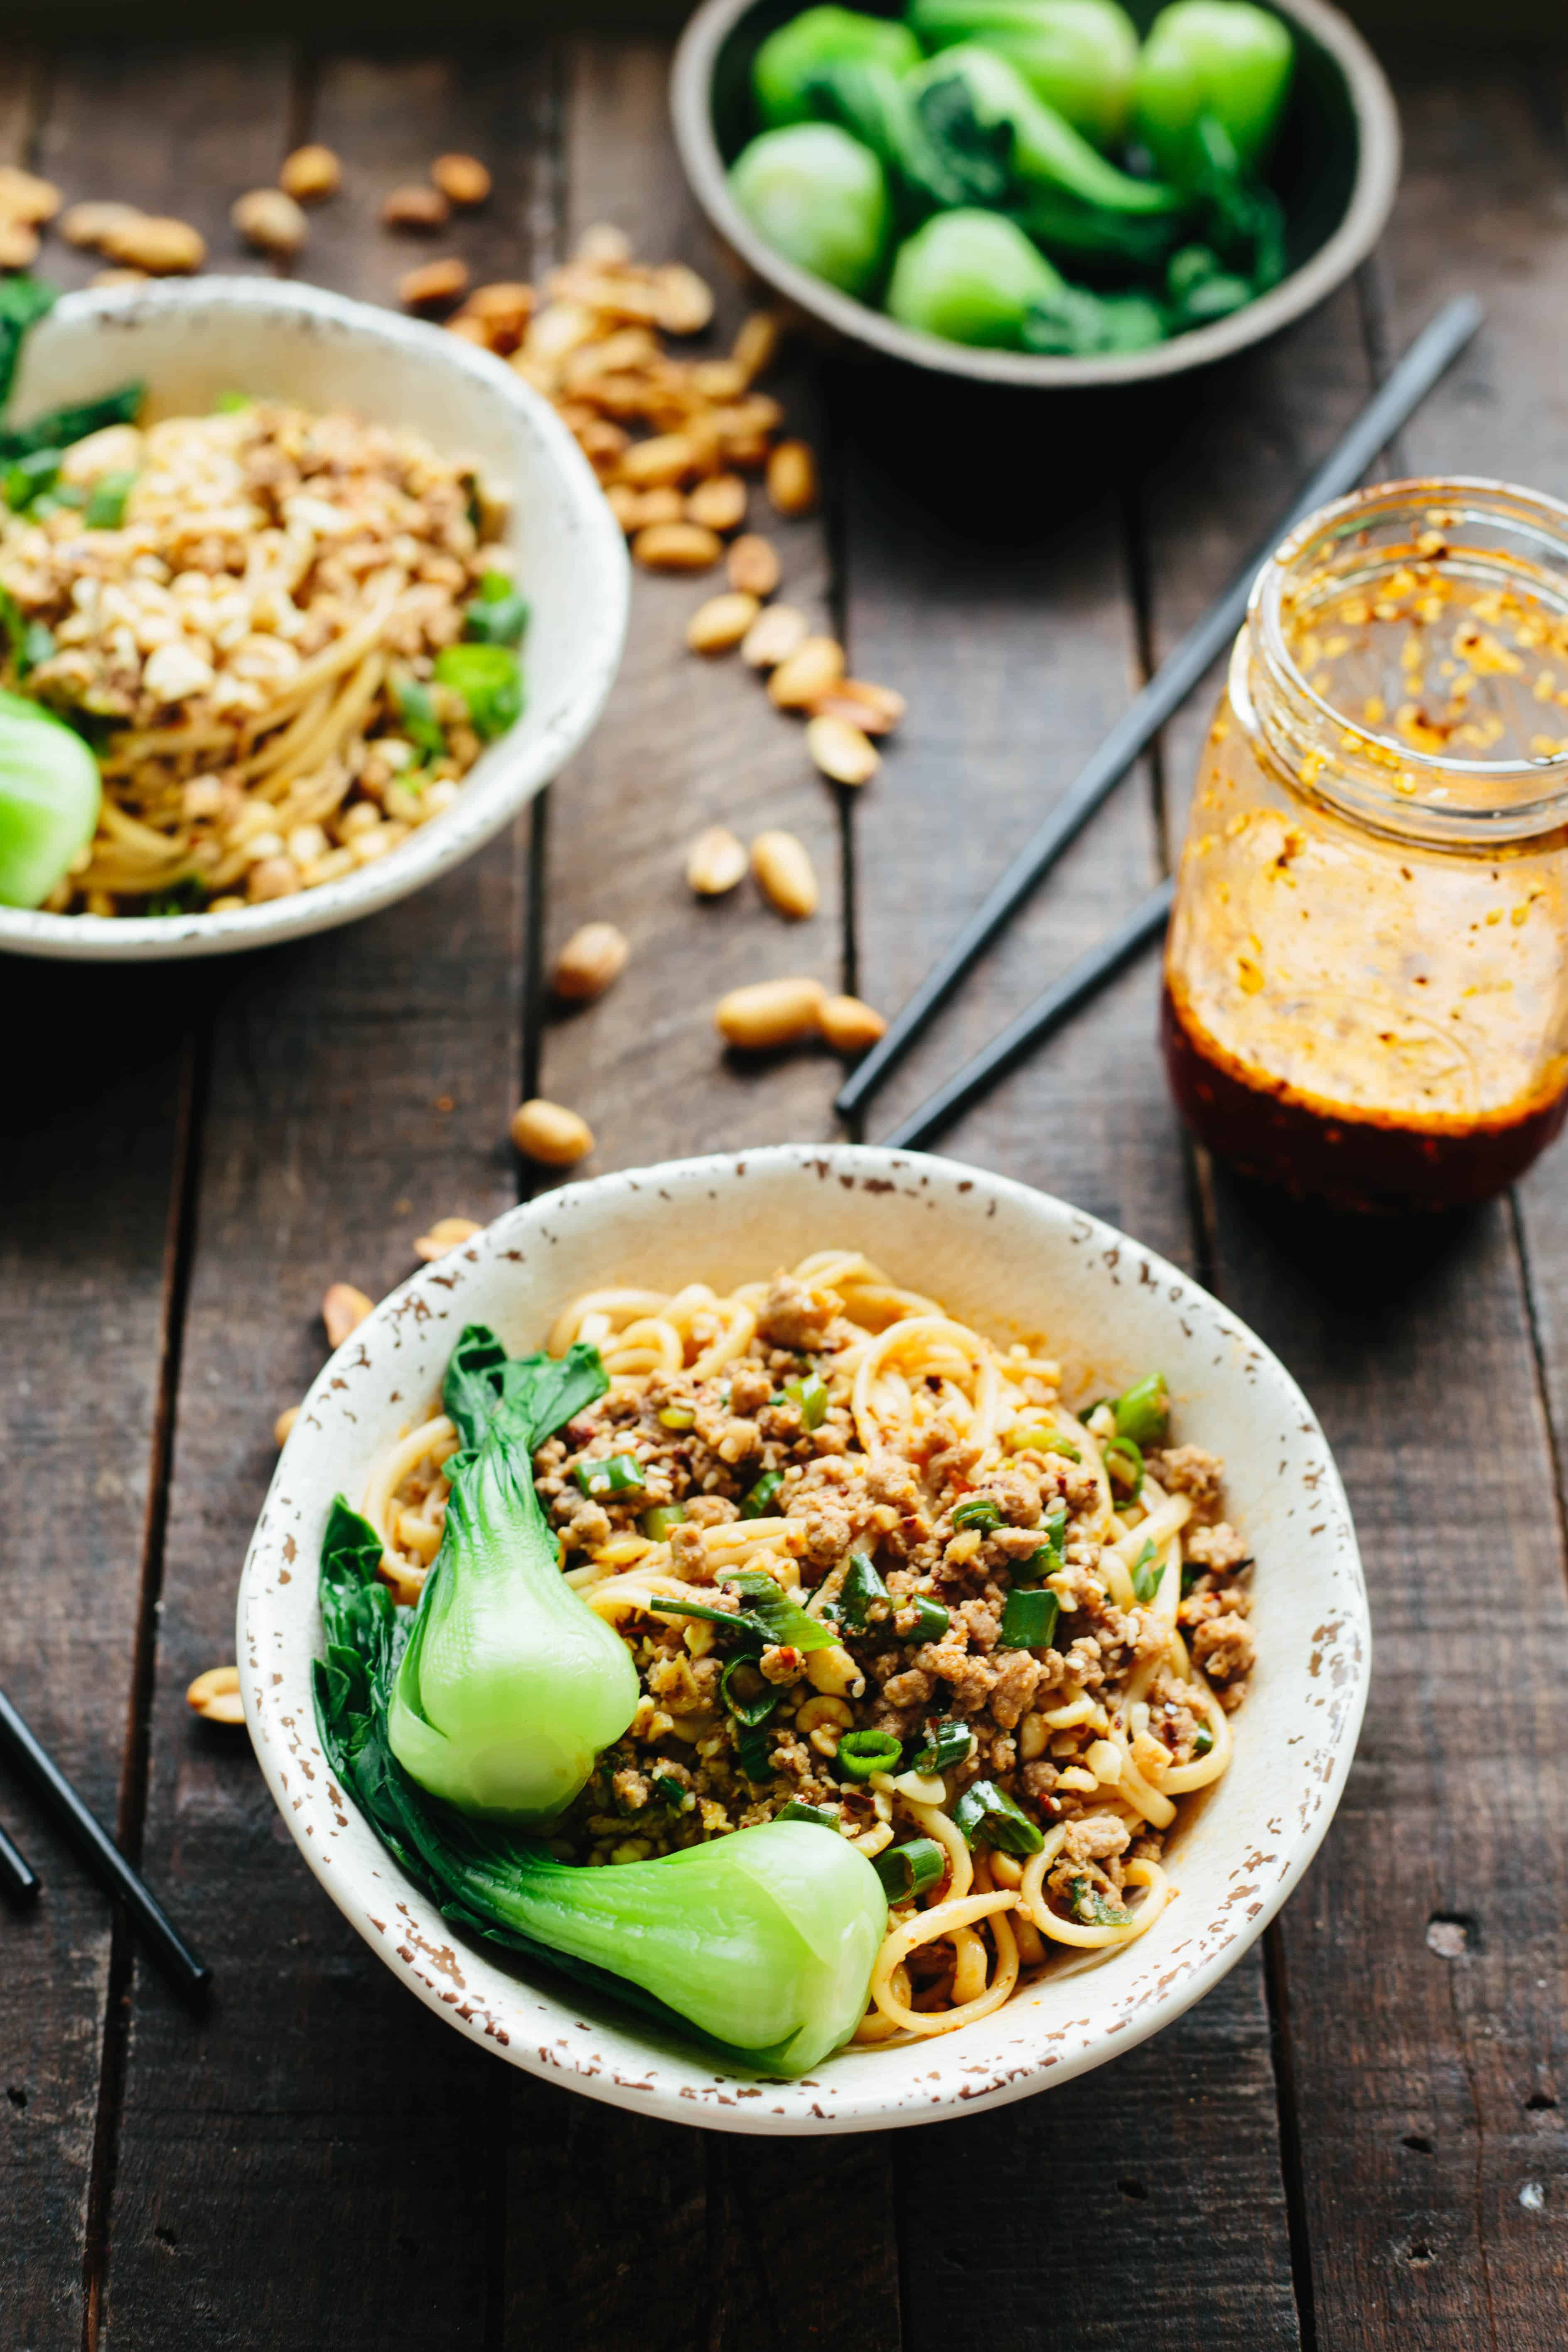 Two bowls of dan dan noodles and a glass jar of homemade chili oil.